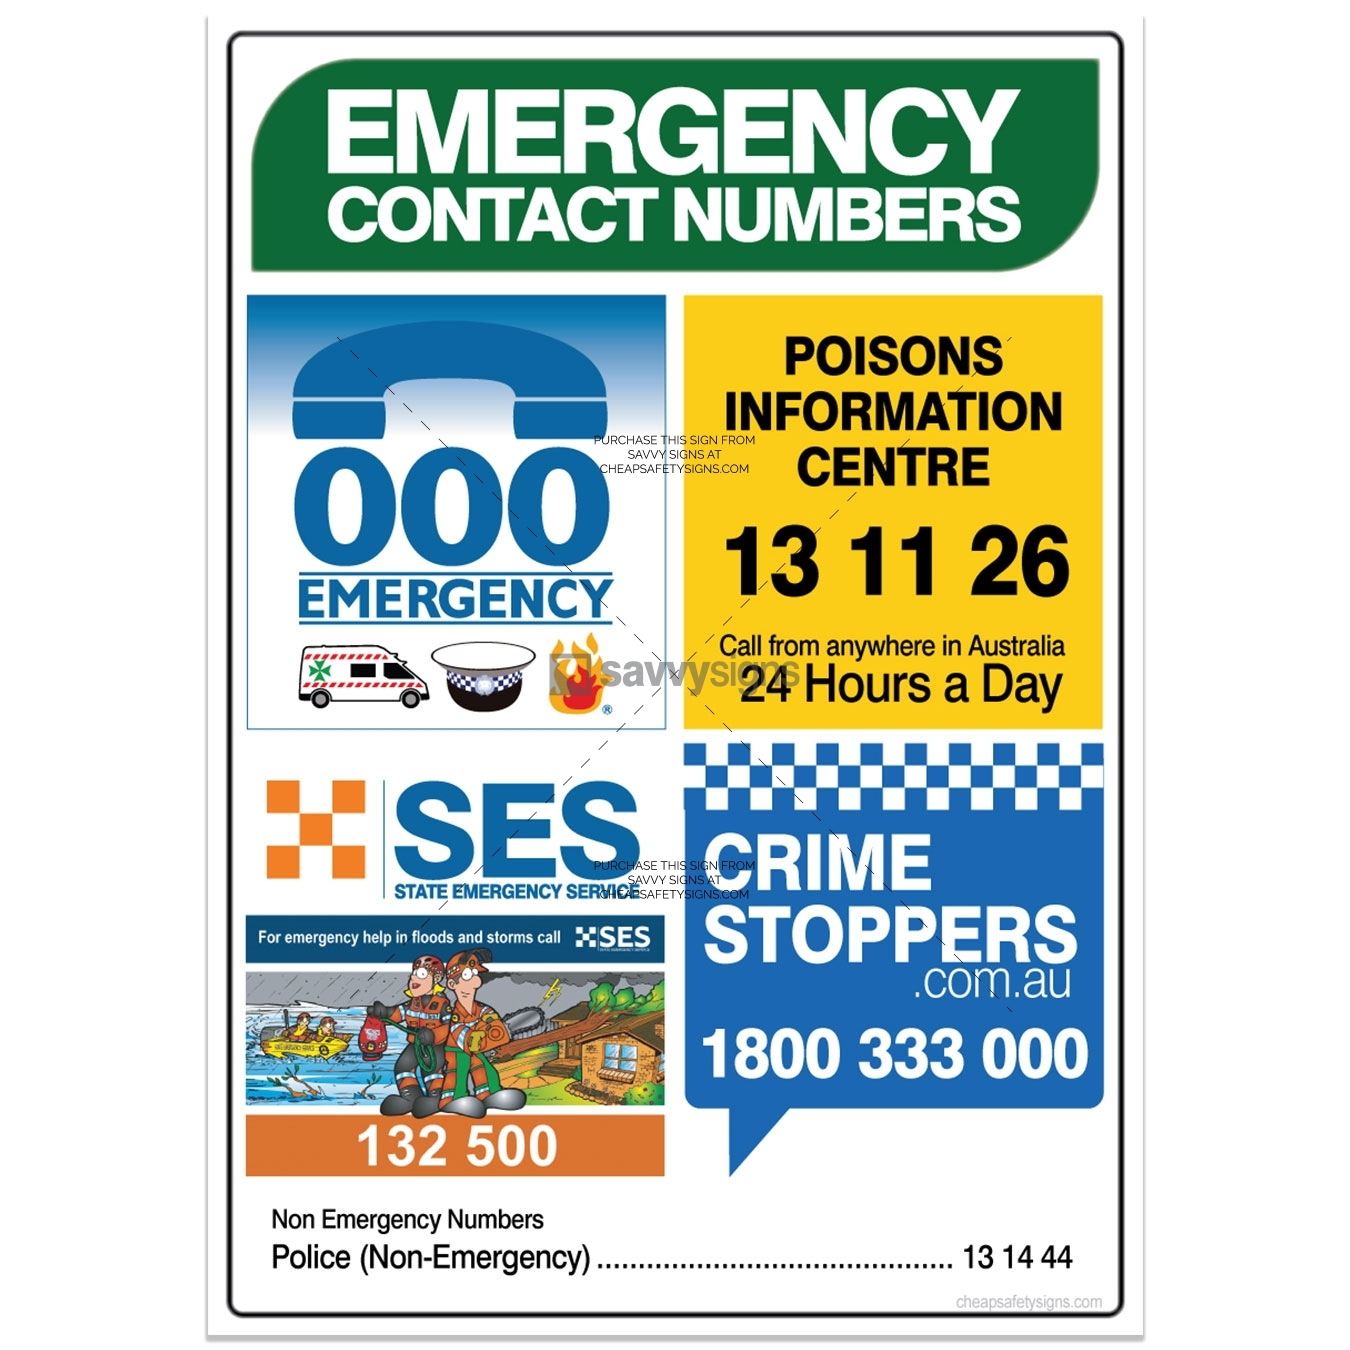 SSEME3021-EMERGENCY-Contact-Numbers-Australia-Safety-Sign_Savvy-Signs_v2